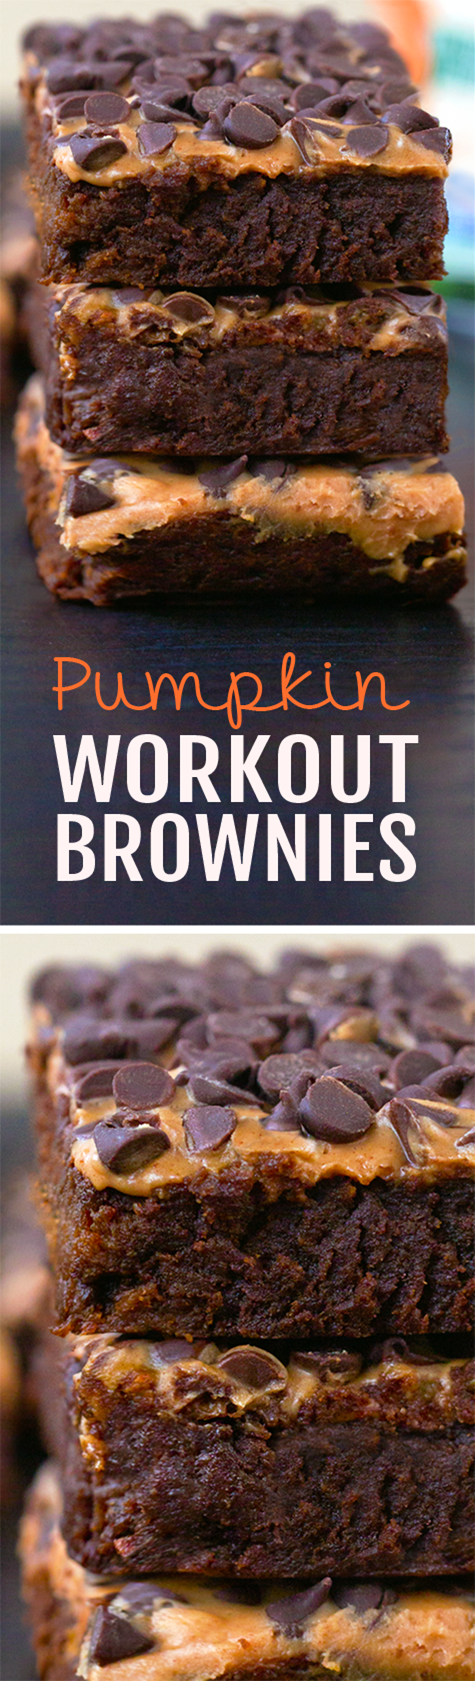 Ultra fudgy pumpkin brownies, without all the extra fat and calories, these healthy pumpkin brownies are amazing!